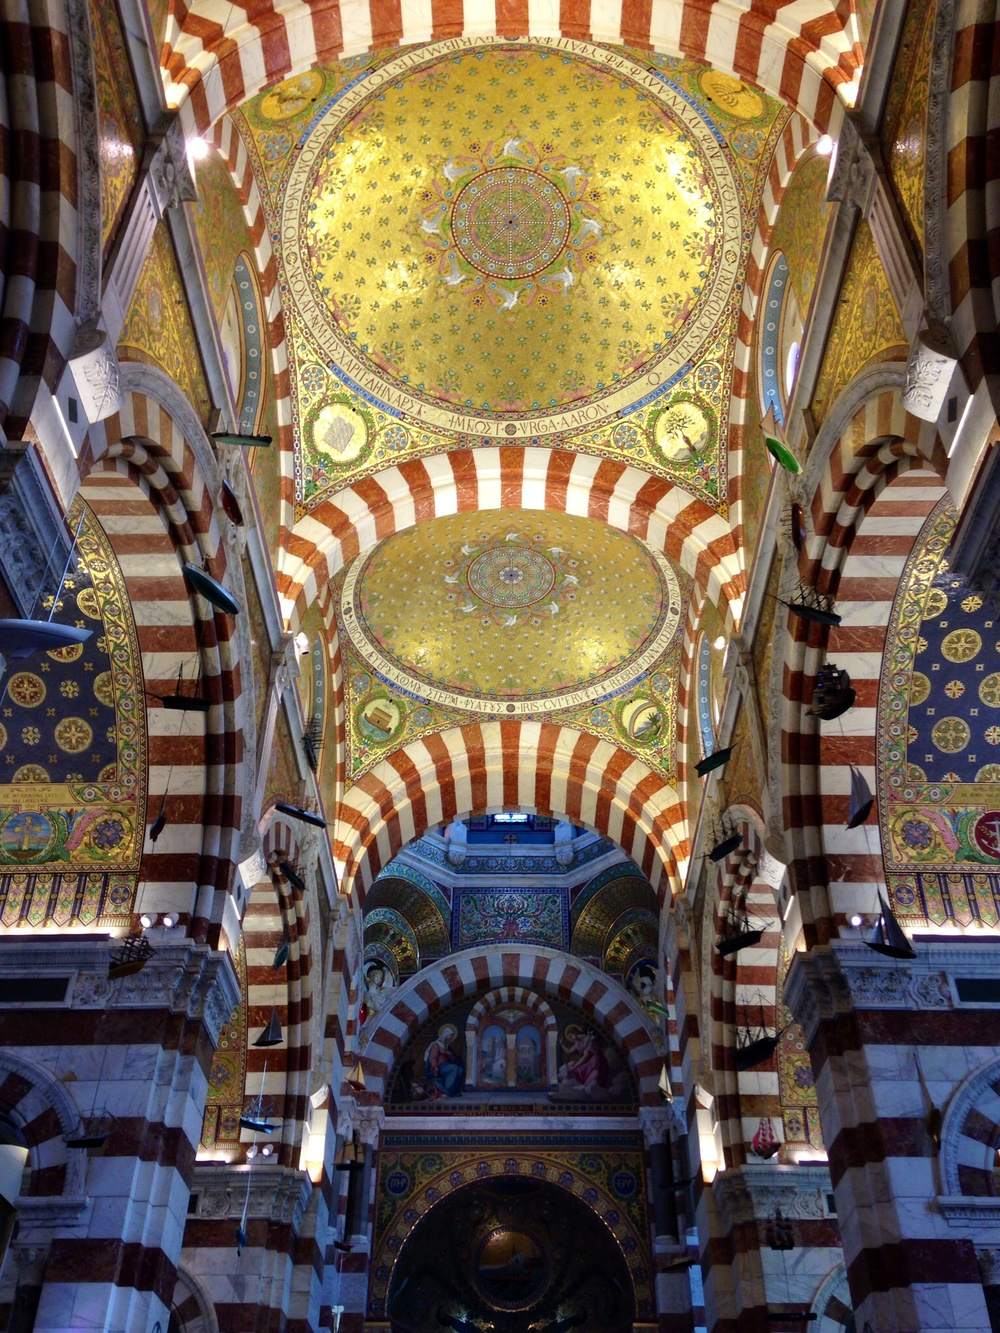 Summit Church vaulted ceiling. Marseille, France.